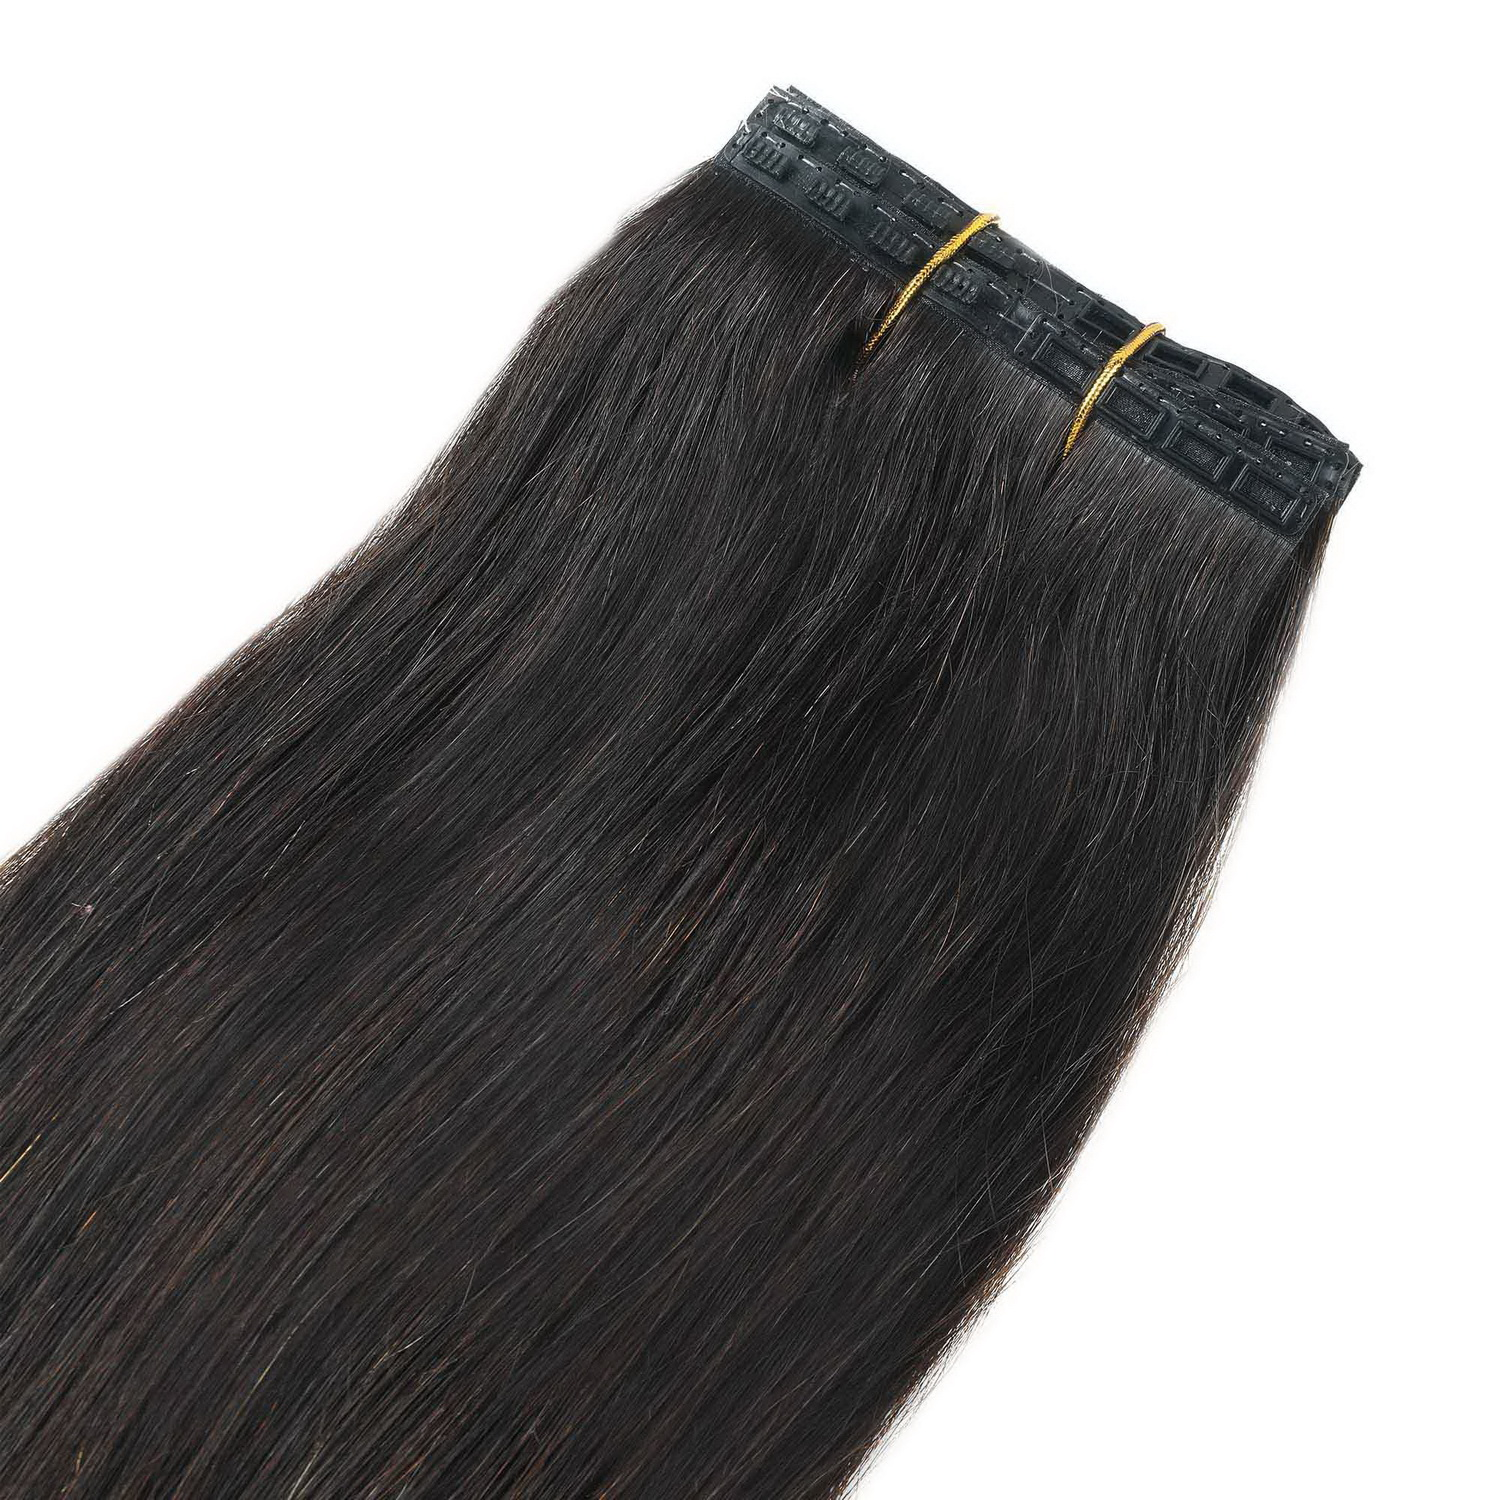 Snap tape hair extension,100% eredeti haj 100gr,color 0#,(natural)